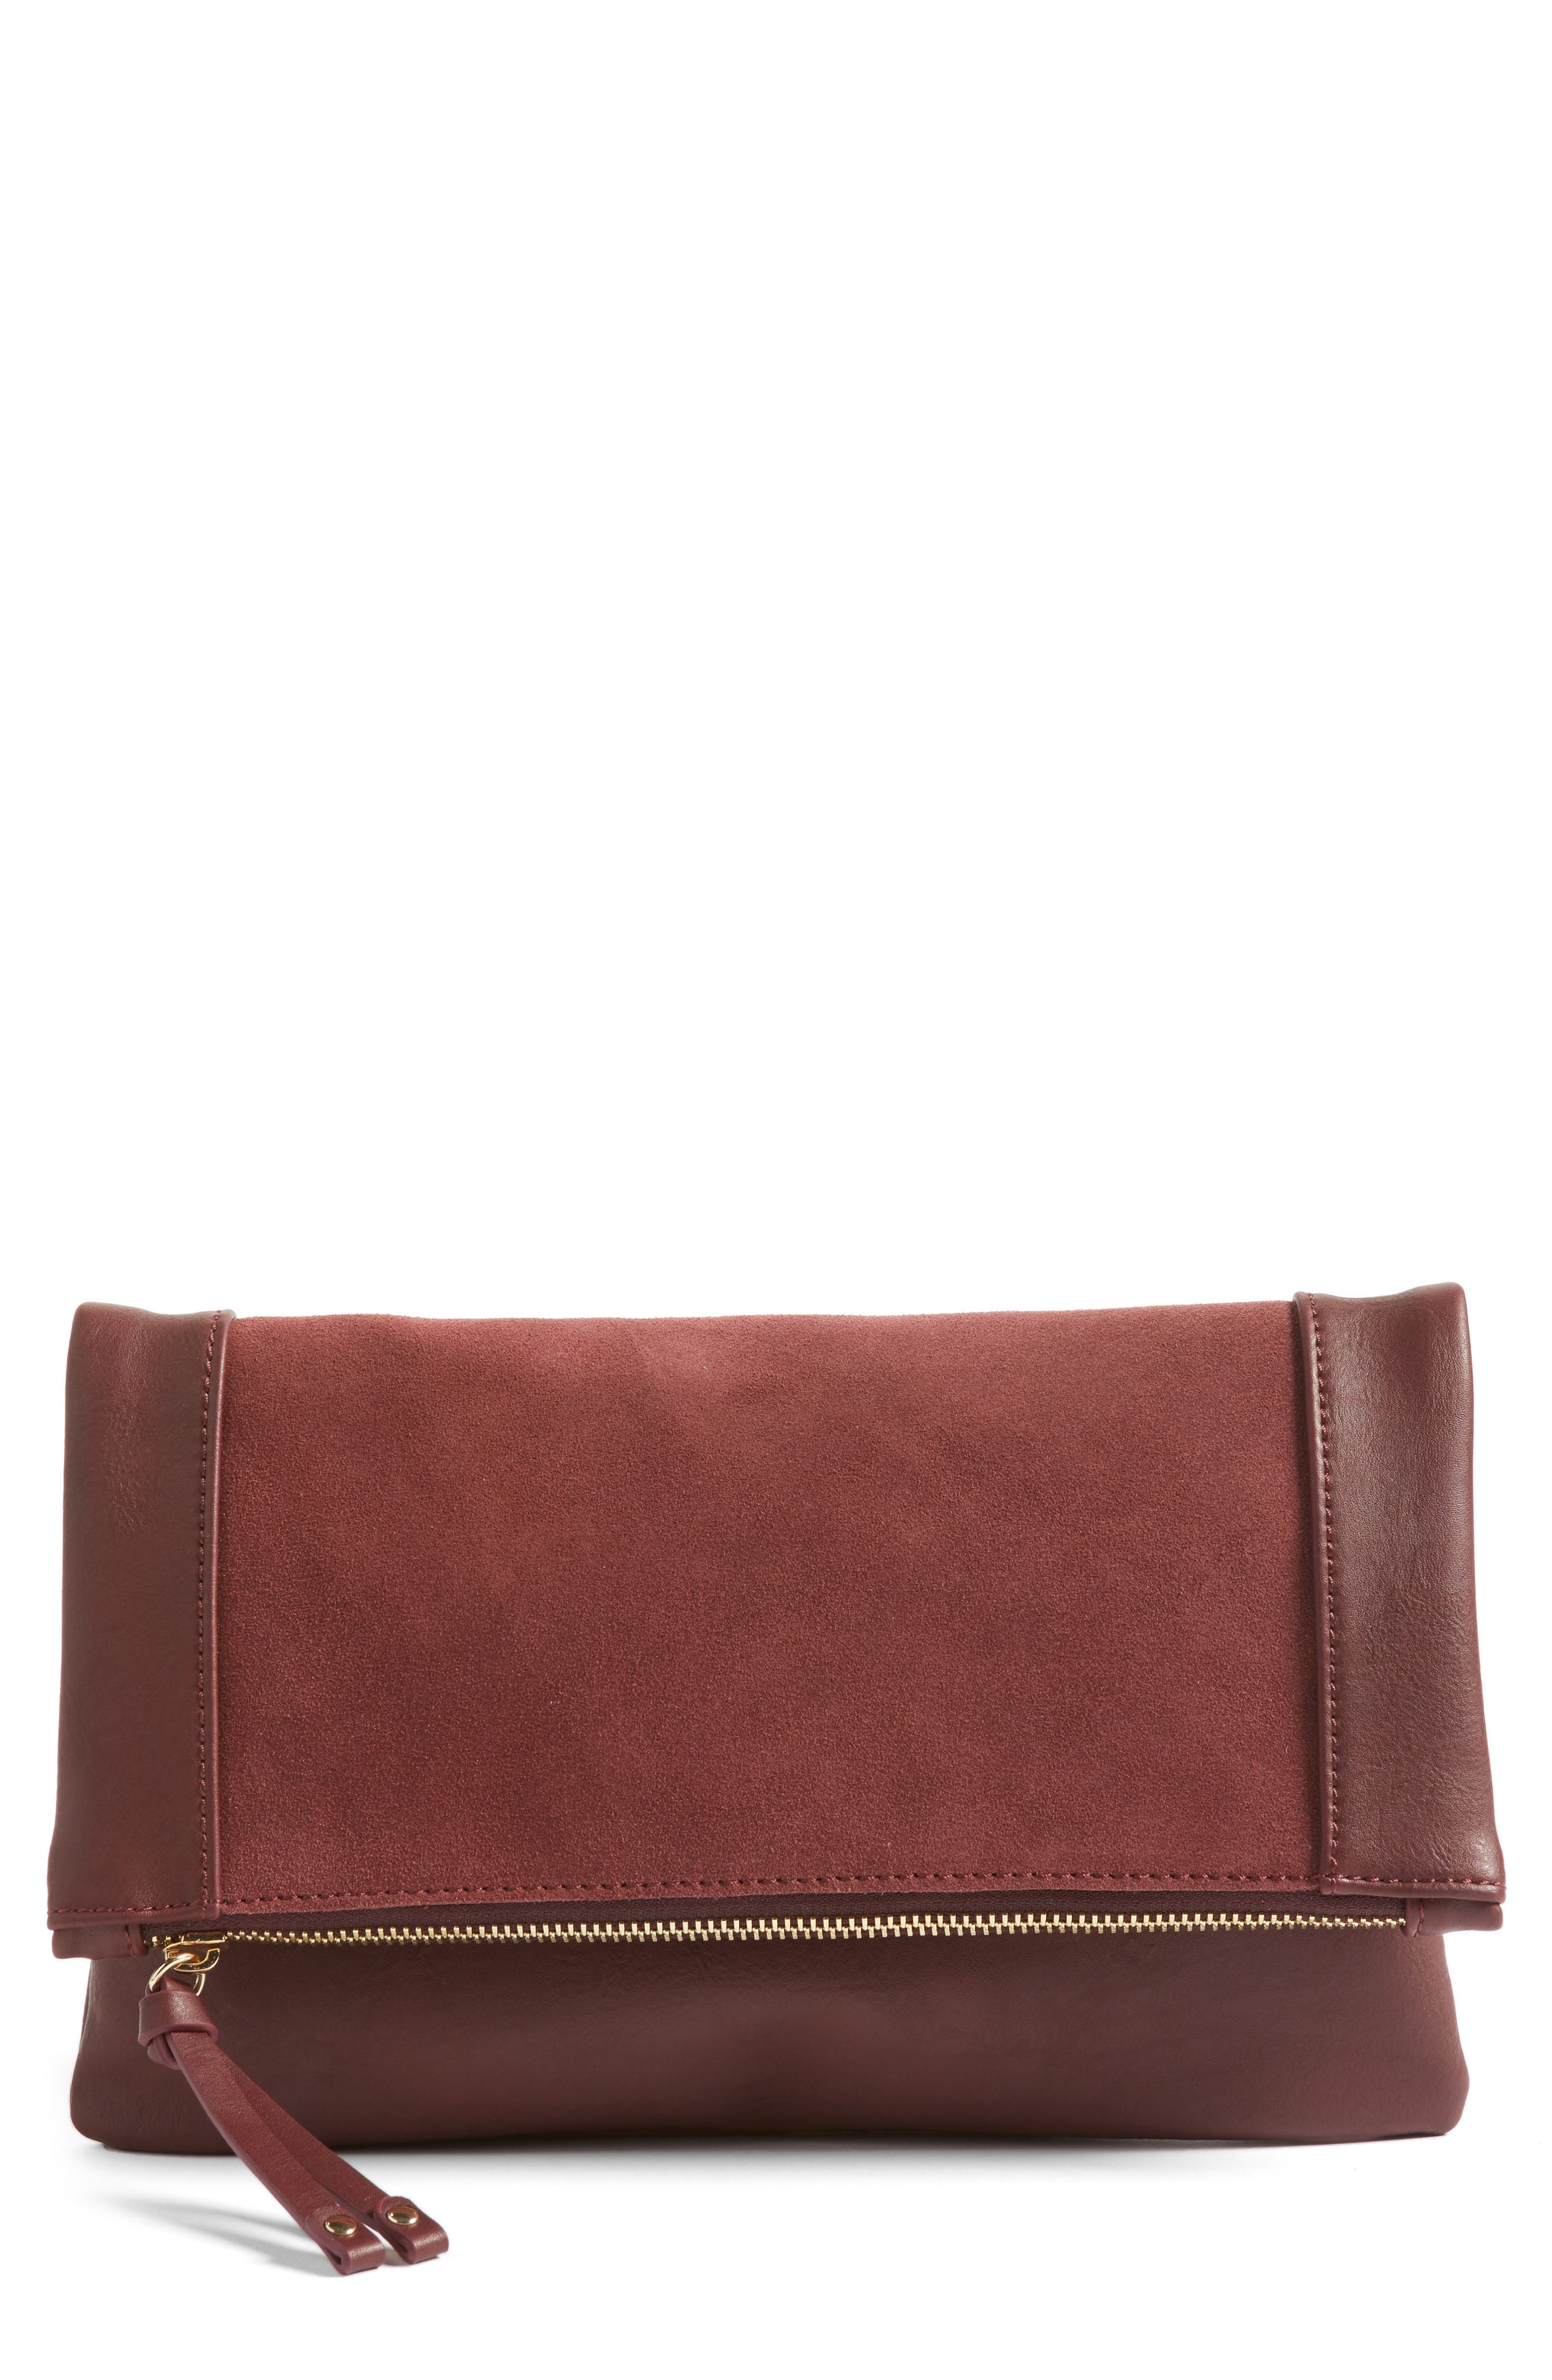 SOLE SOCIETY Jemma Suede Clutch